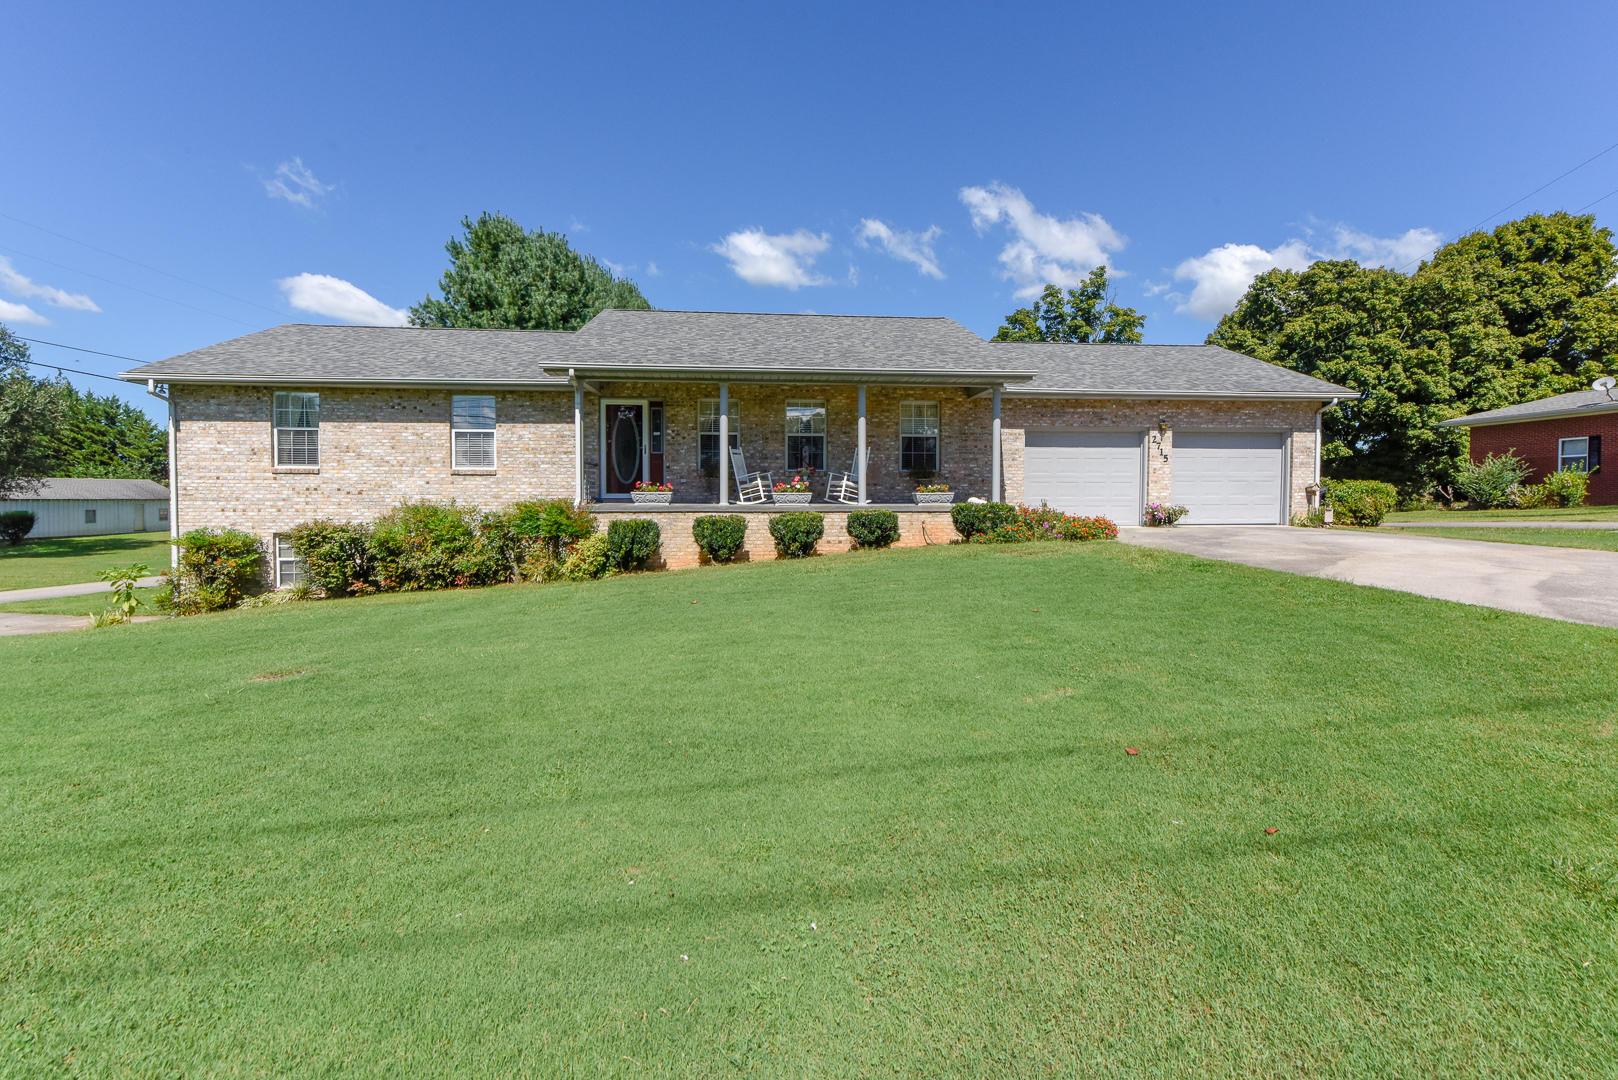 2715 Old Niles Ferry Rd, Maryville, TN 37803